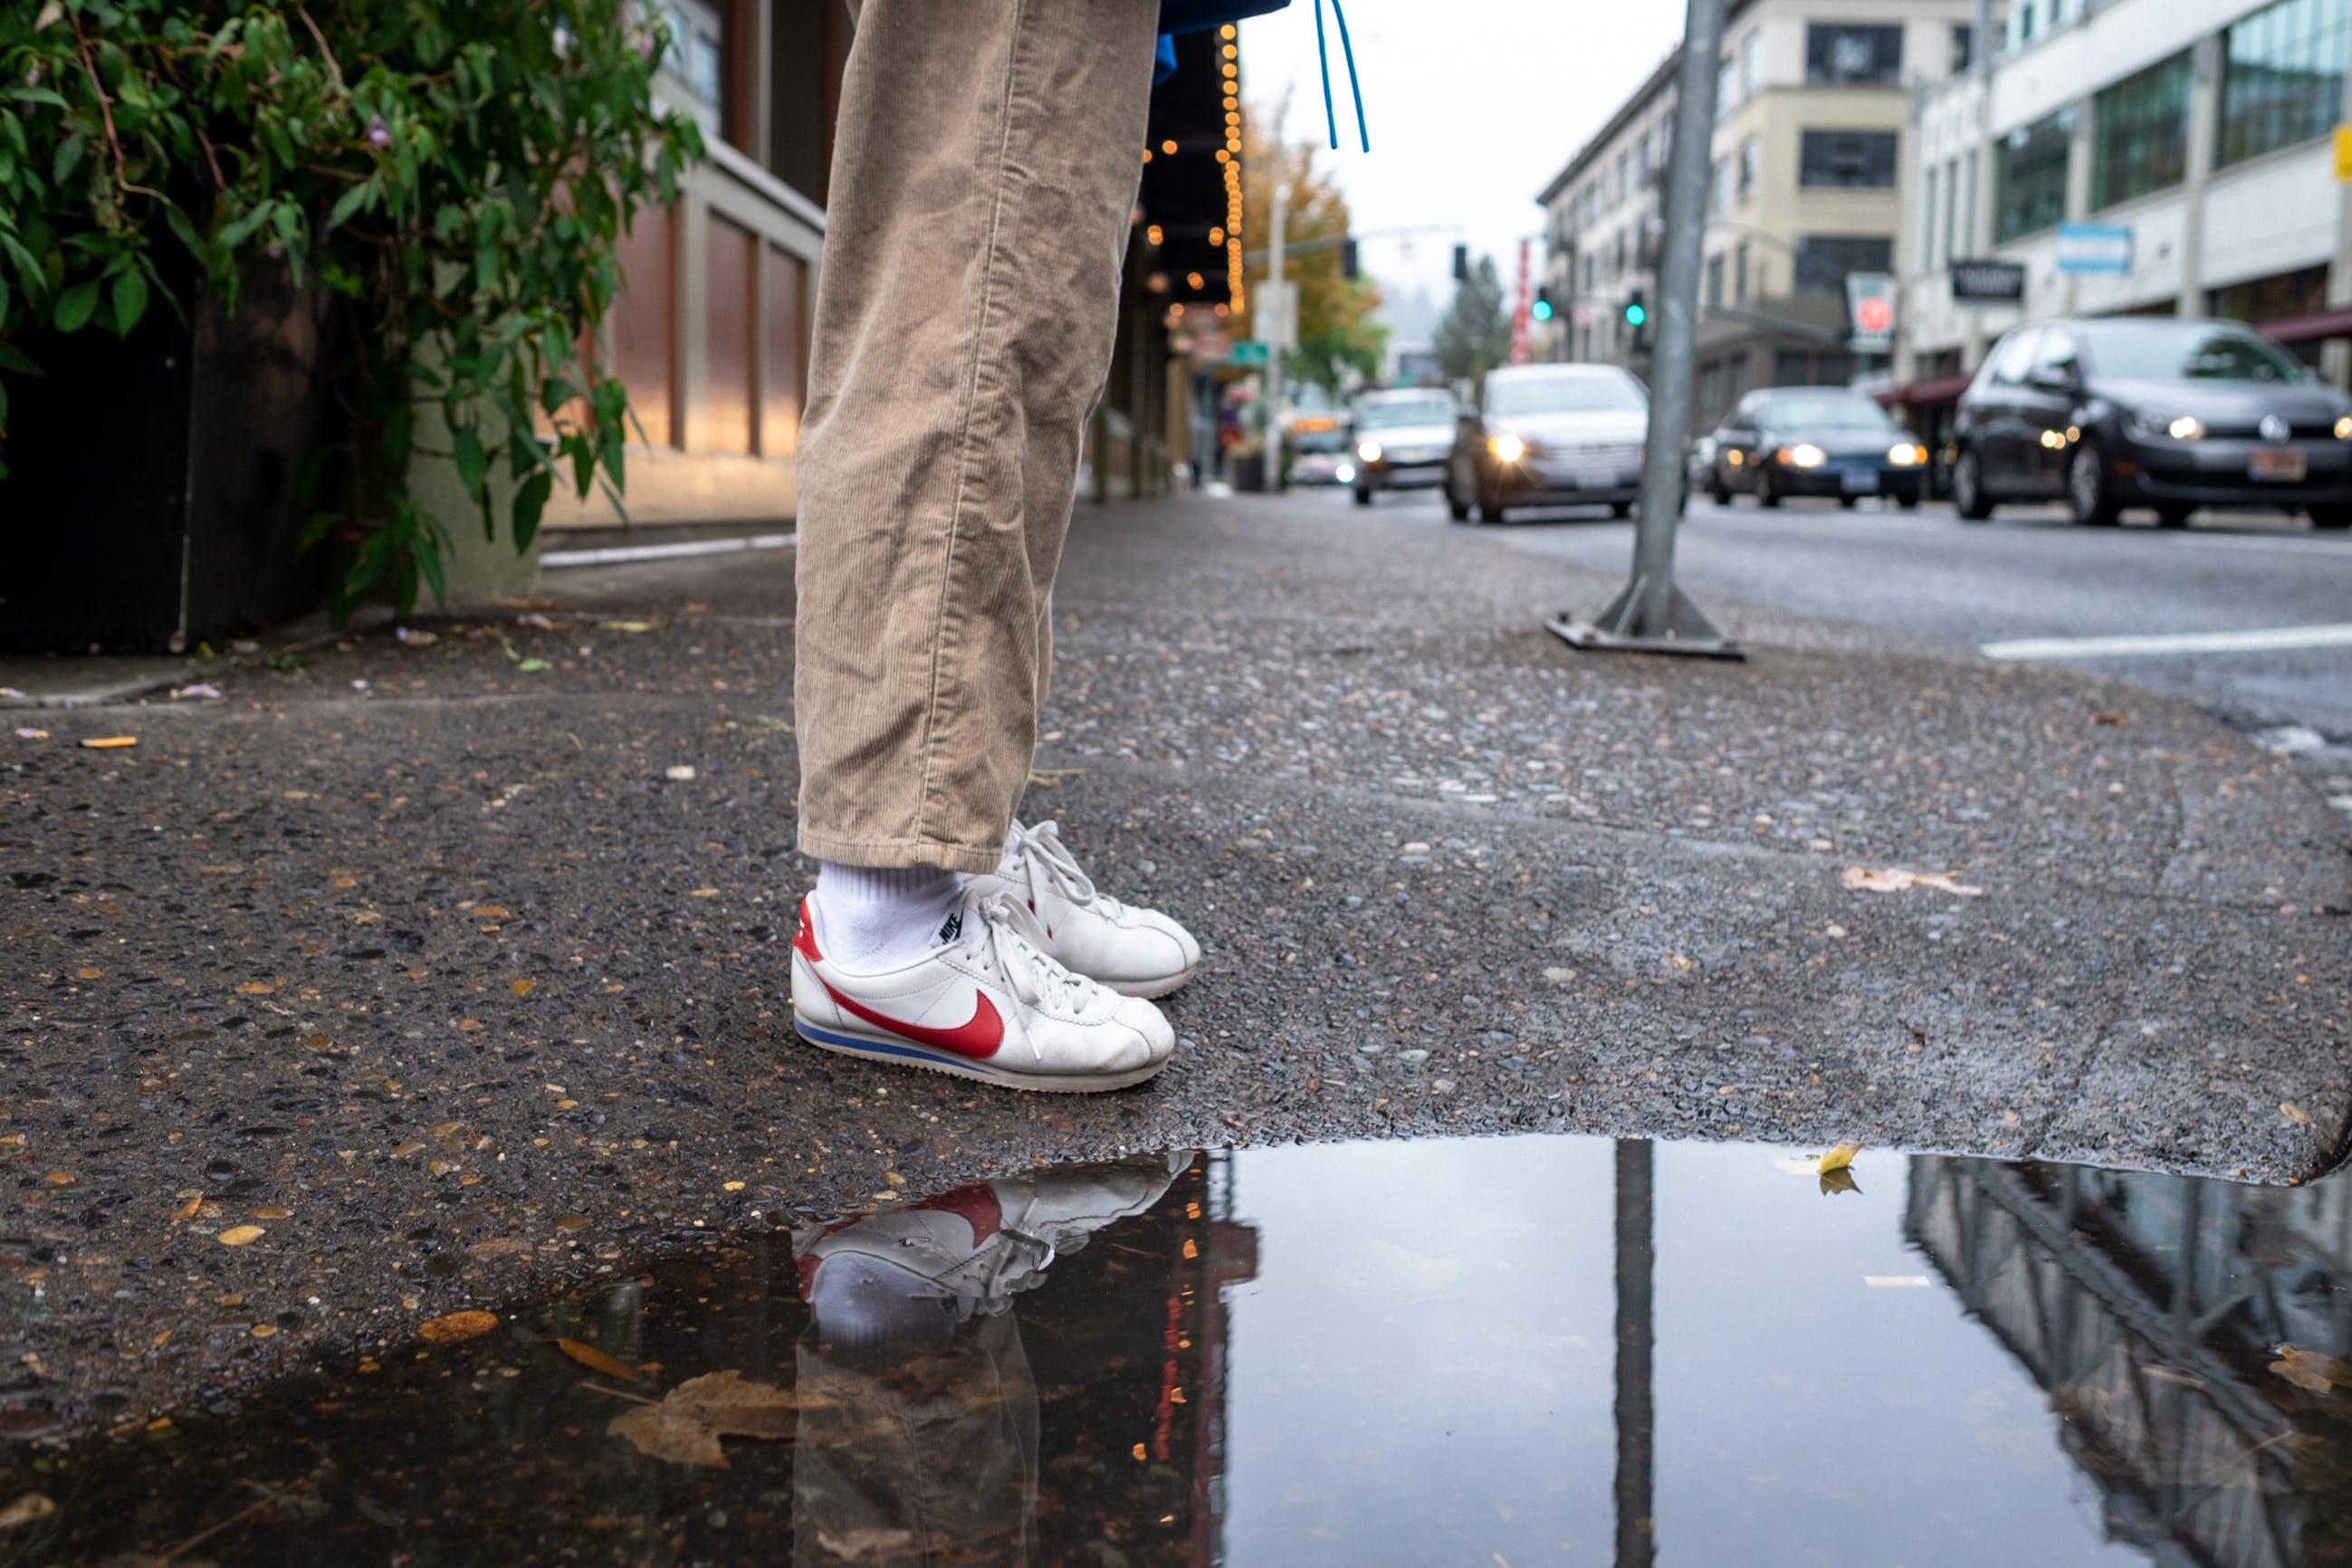 Photo of Person Wearing White and Red Nike Low-top Sneakers Standing Next to a Puddle